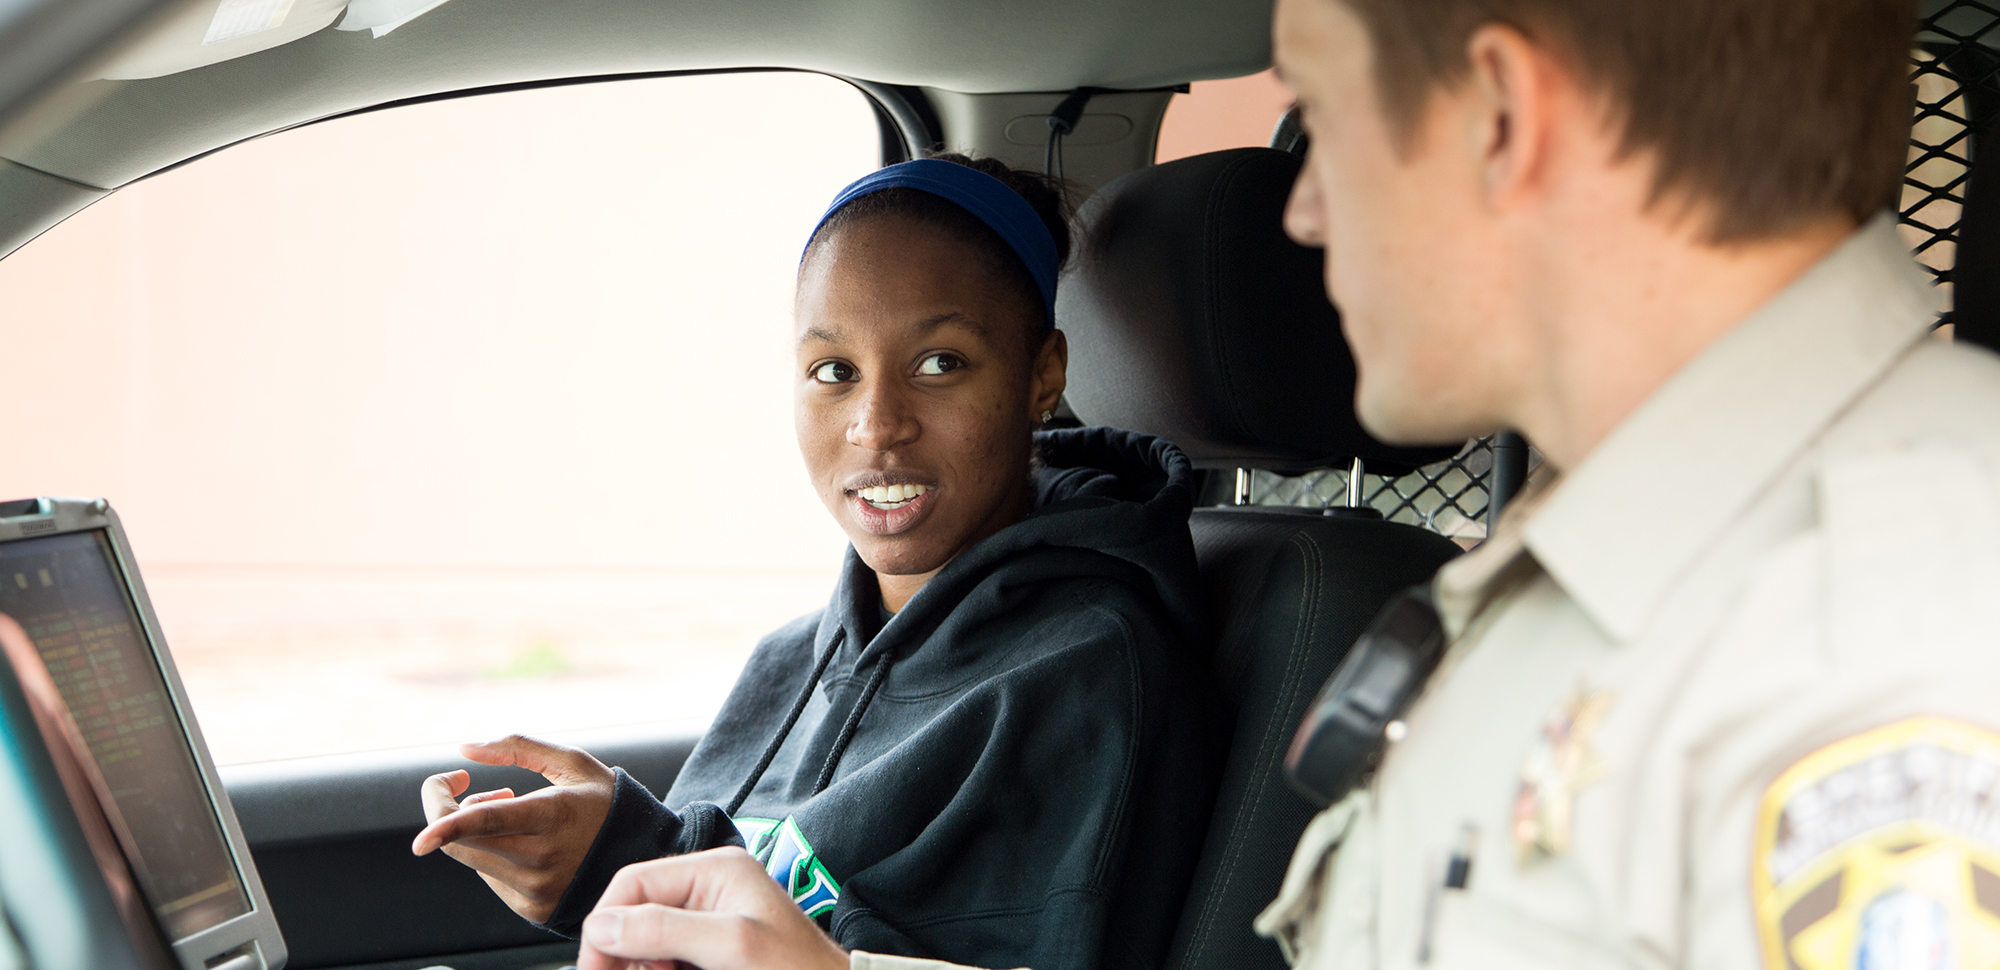 A female student doing a ride-along with a police officer.